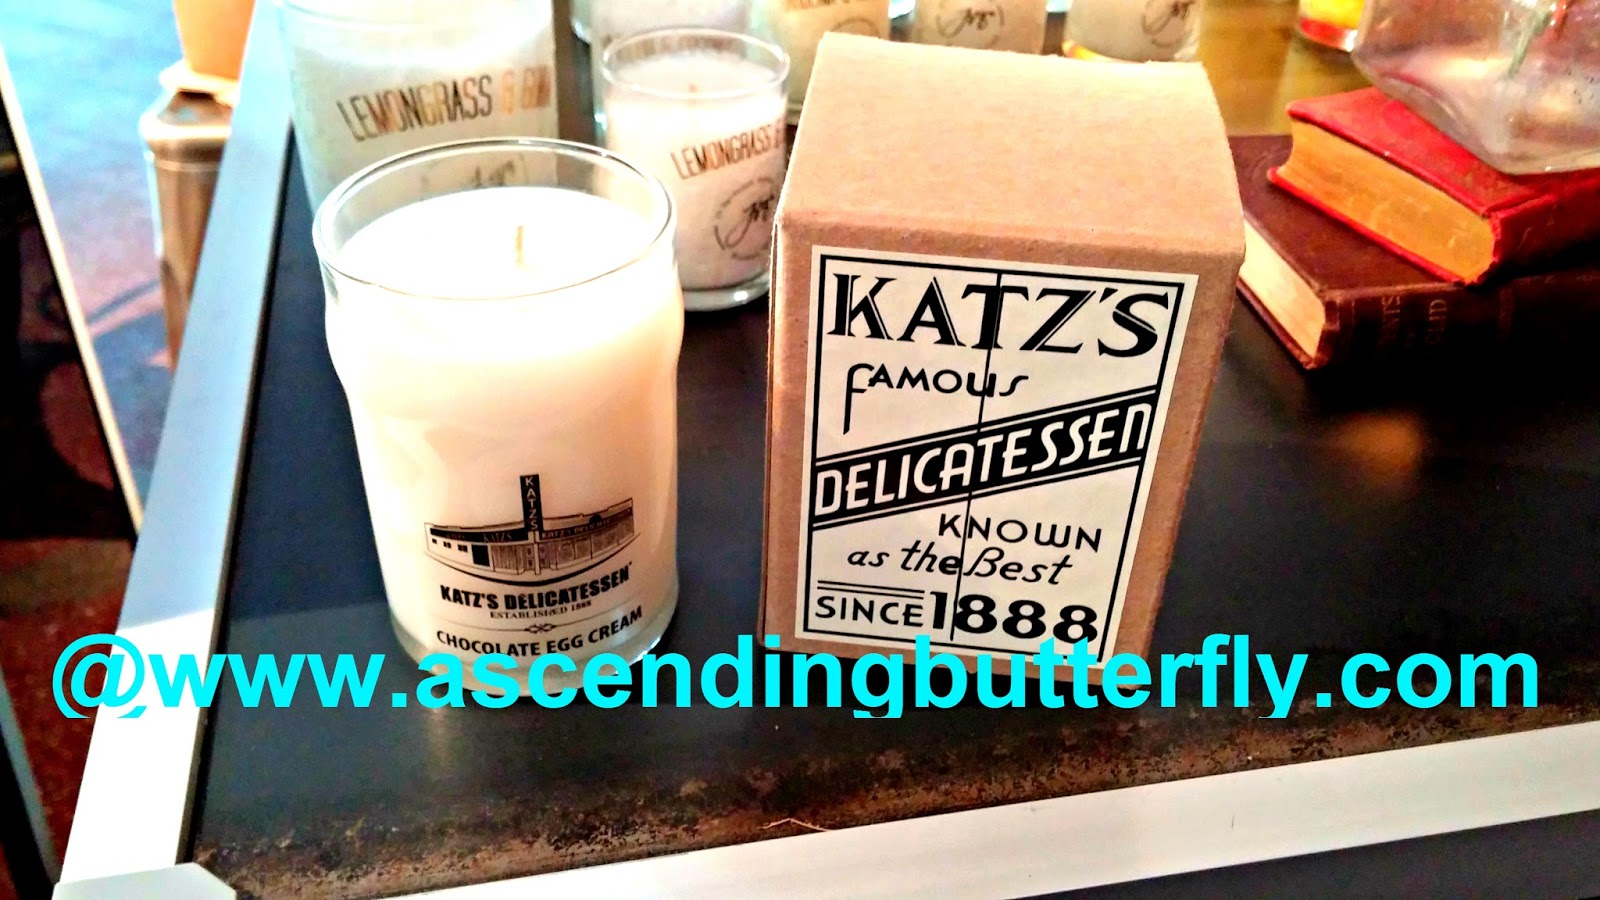 candle in honor of the Famous Katz's Delicatessen, a NYC institution since 1888